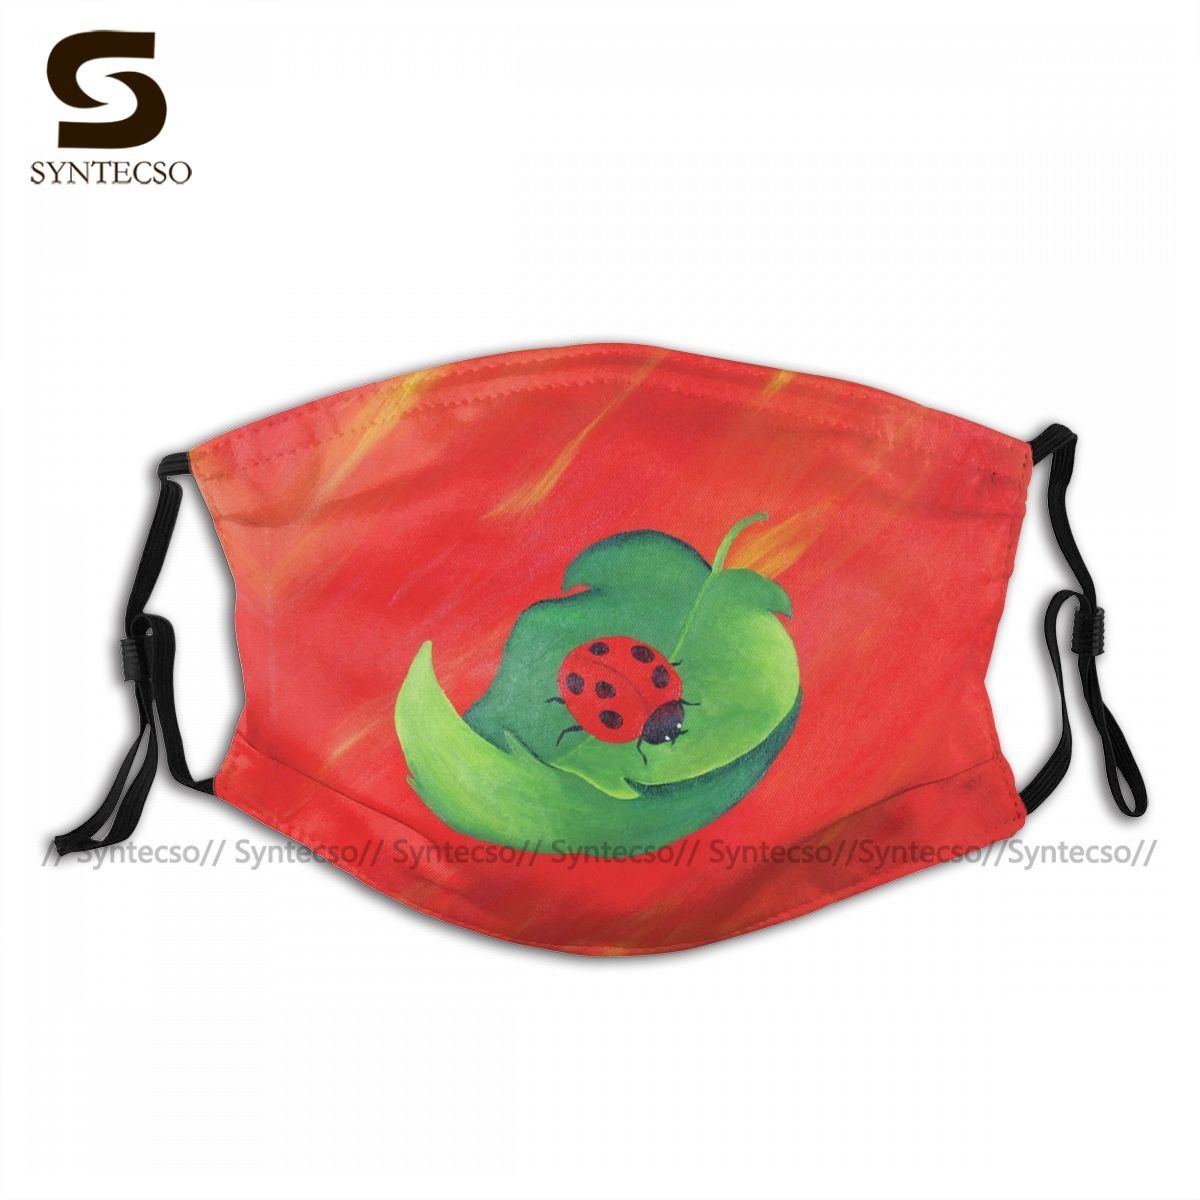 Unisex Fantasy A Little Cup Of Luck Facial Mask Sublimation Printed Bike Cloth Face Mouth Mask With Filters